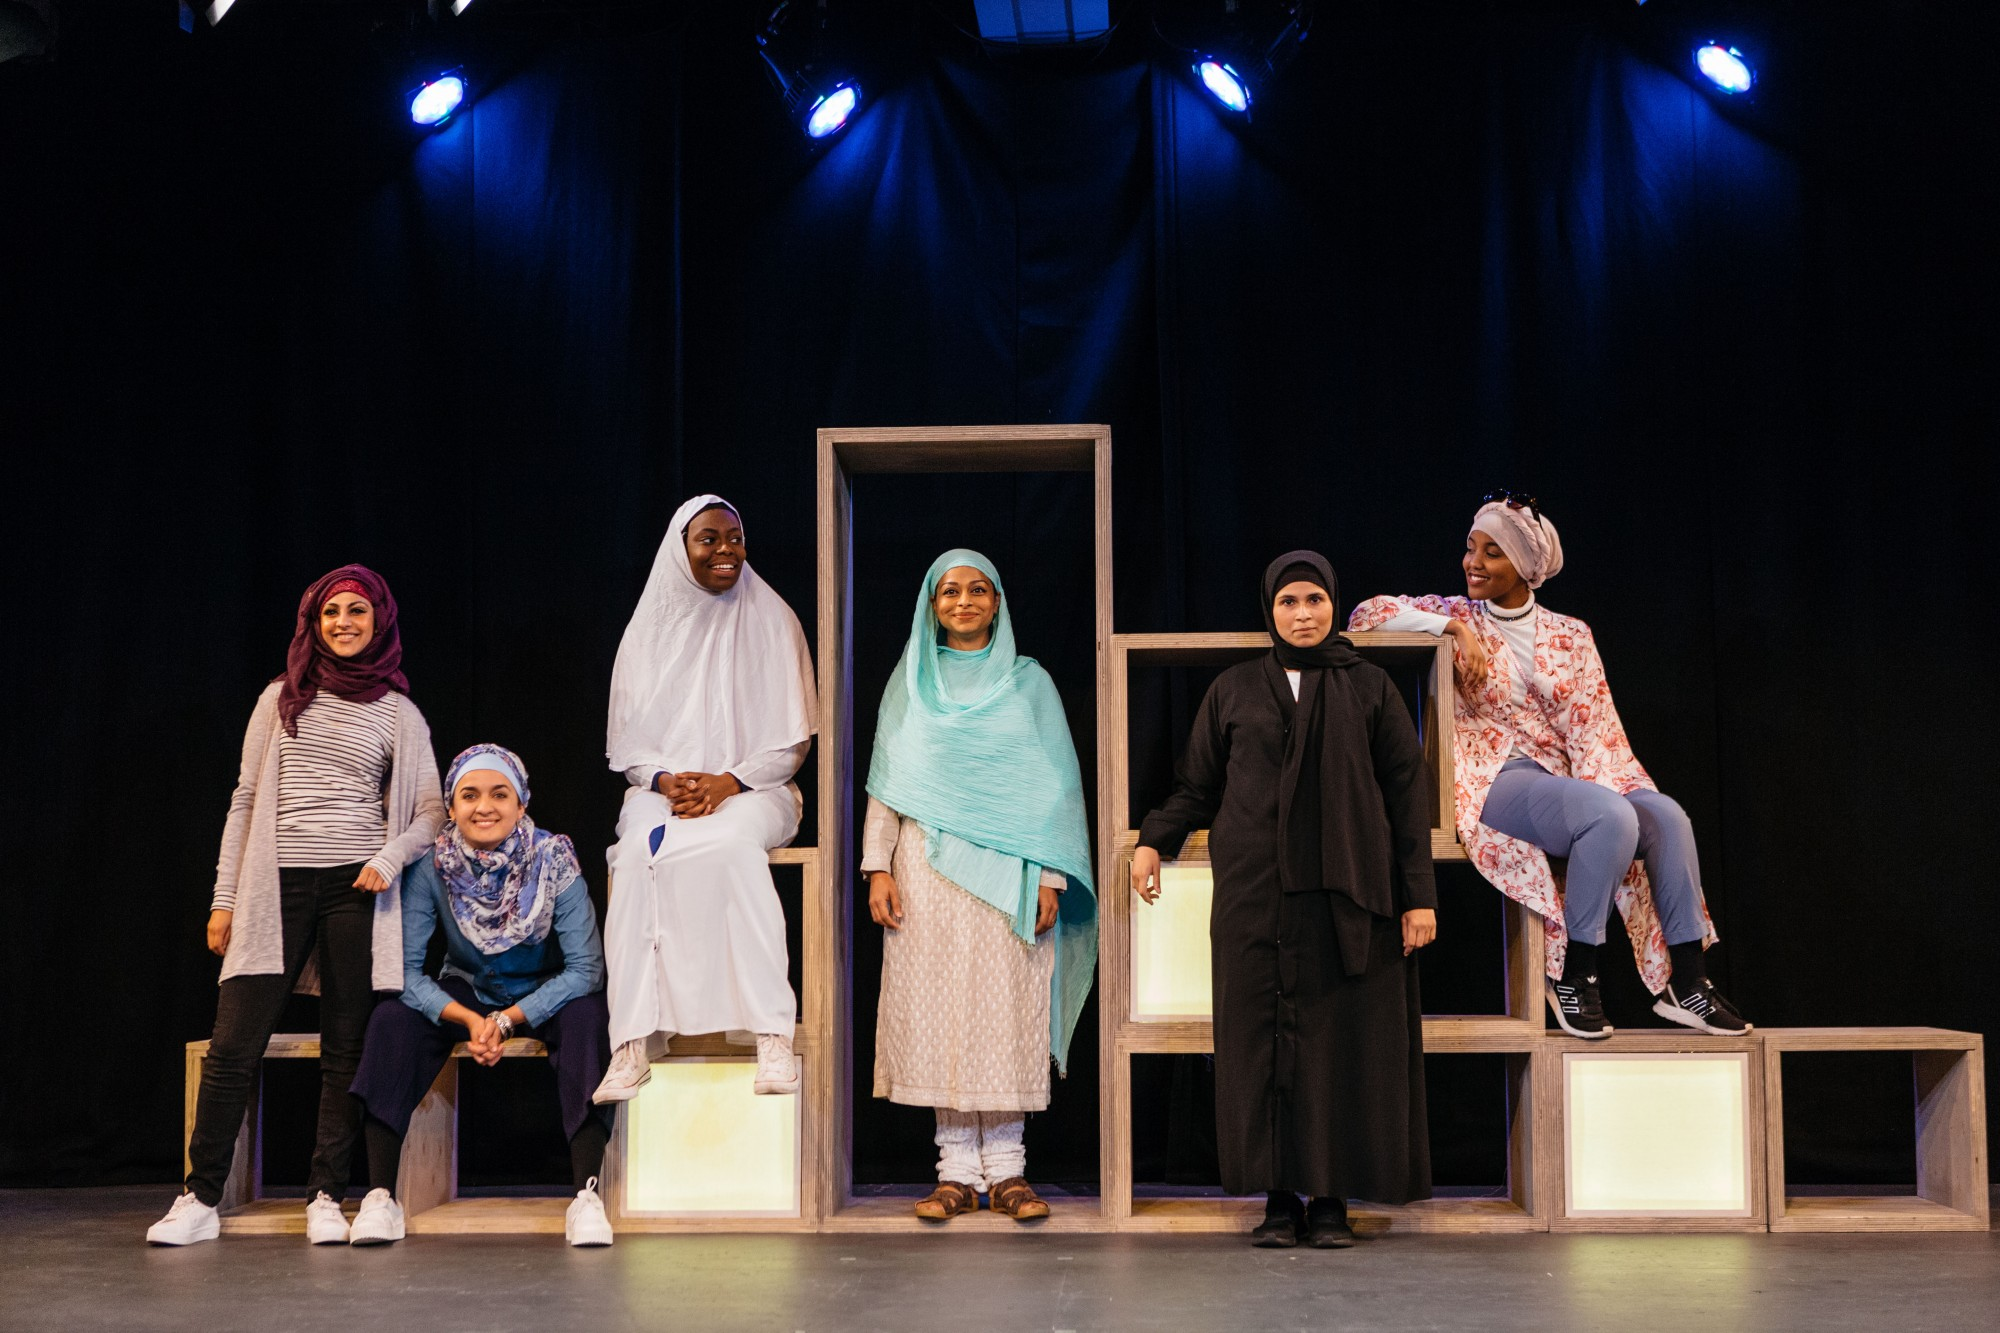 Cast-of-Hijabi-Monologues-London-directed-by-Milli-Bhatia-13-©helenmurray-2000x1333.jpg